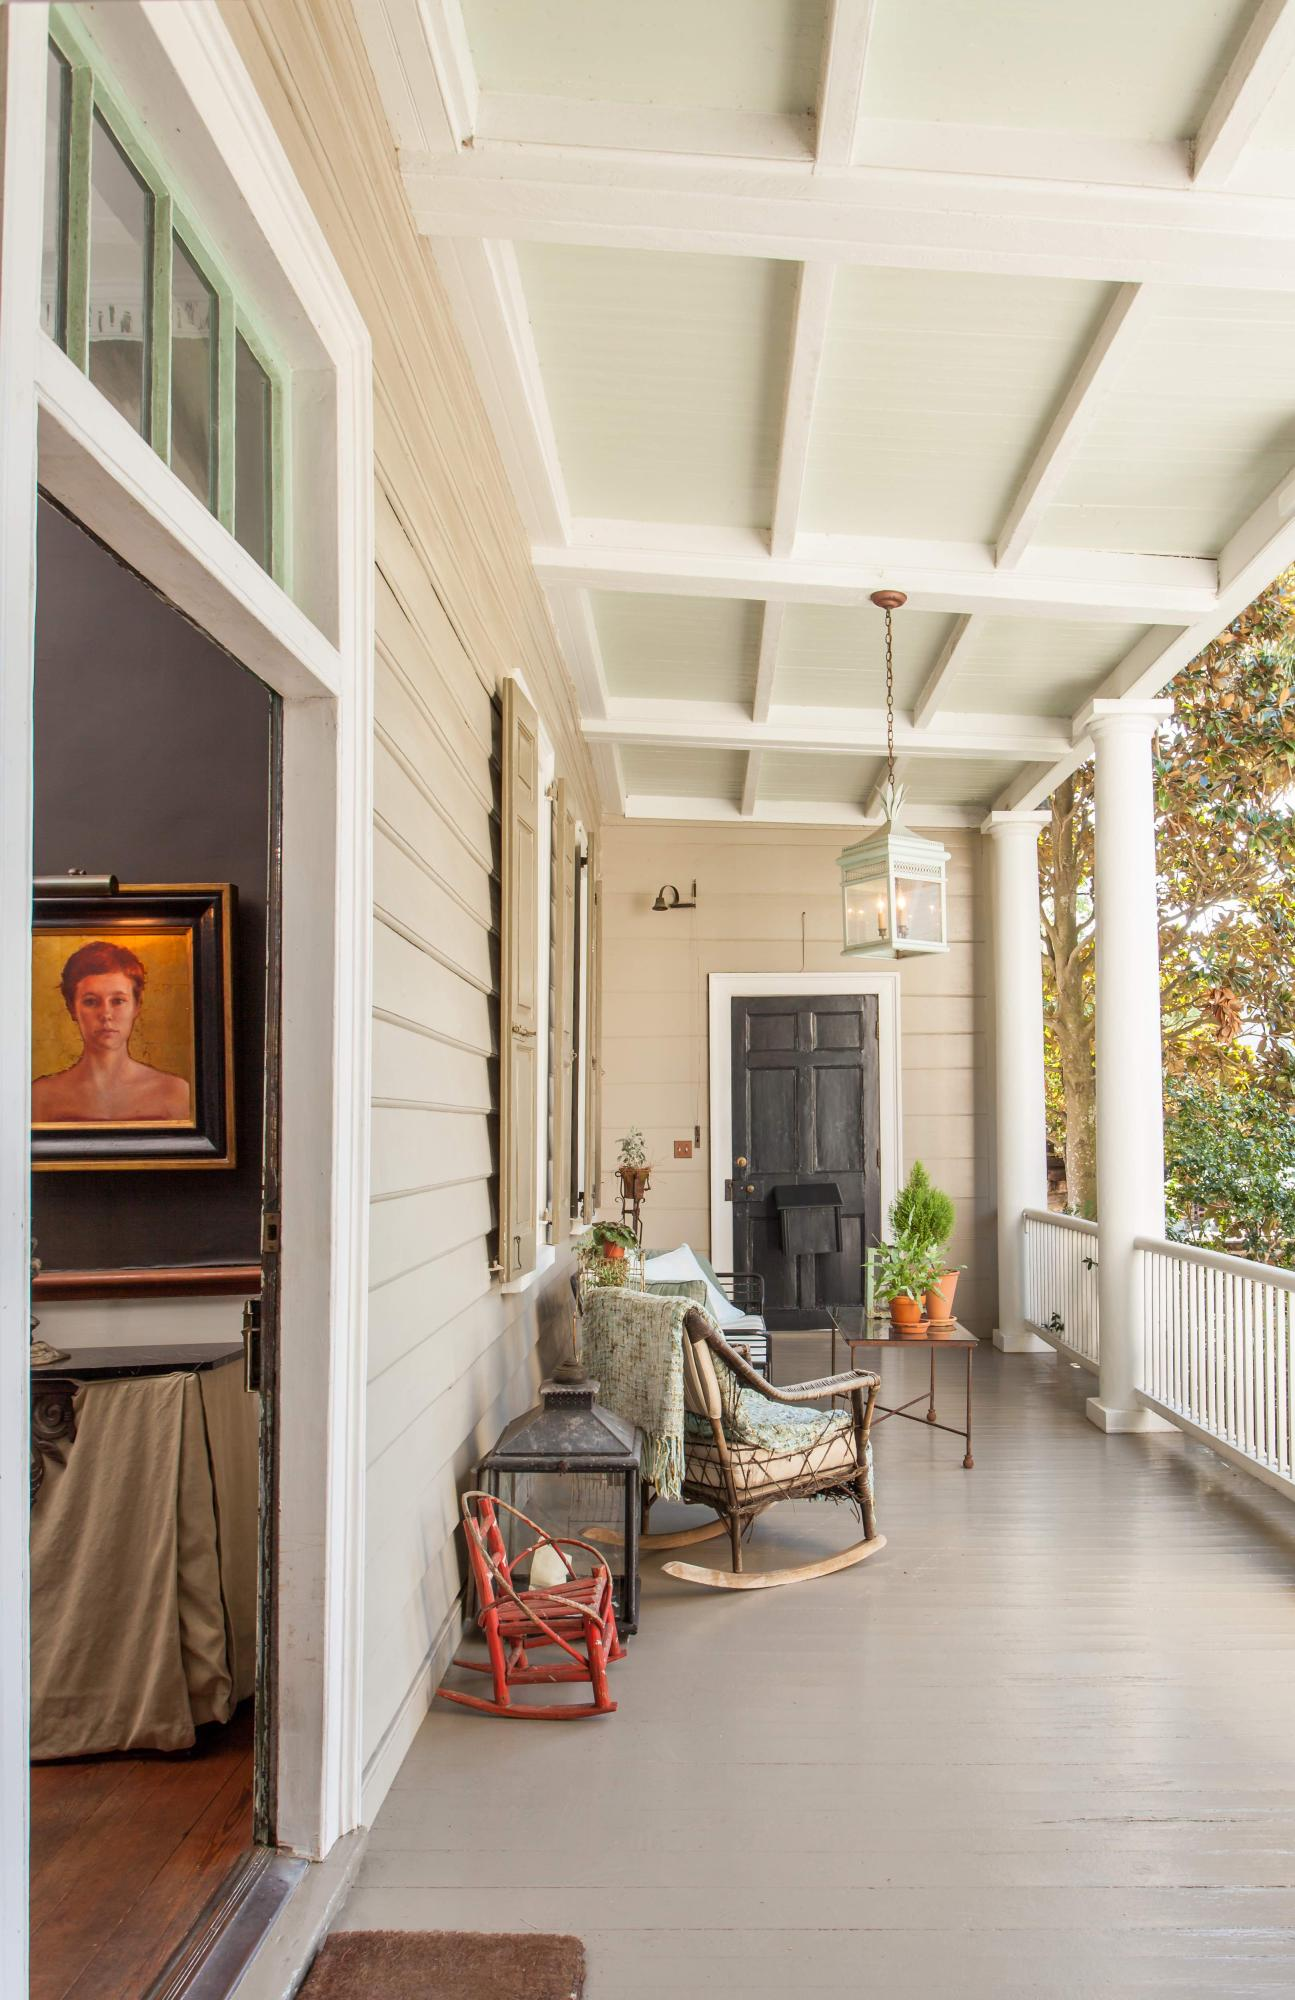 South of Broad Homes For Sale - 58 South Battery, Charleston, SC - 51